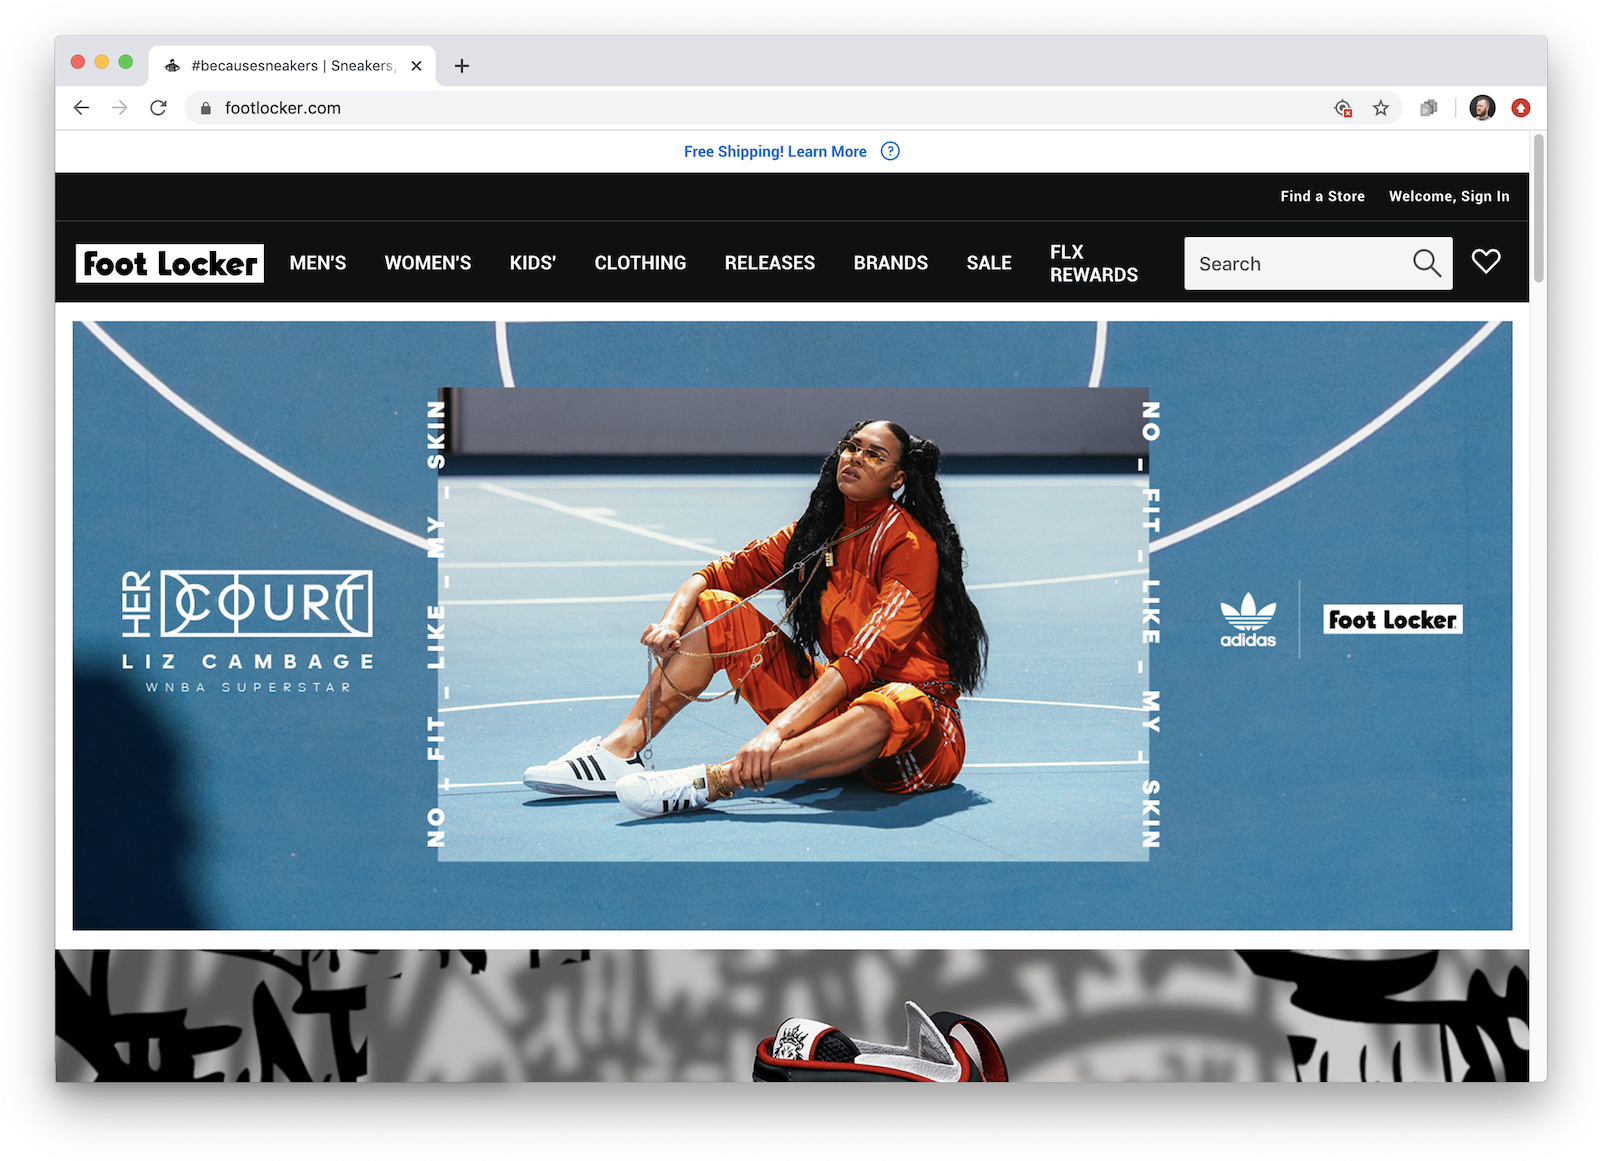 Screenshot of a web header for the campaign on footlocker.com, featuring Liz Cambage, in the same orange tracksuit on blue court.